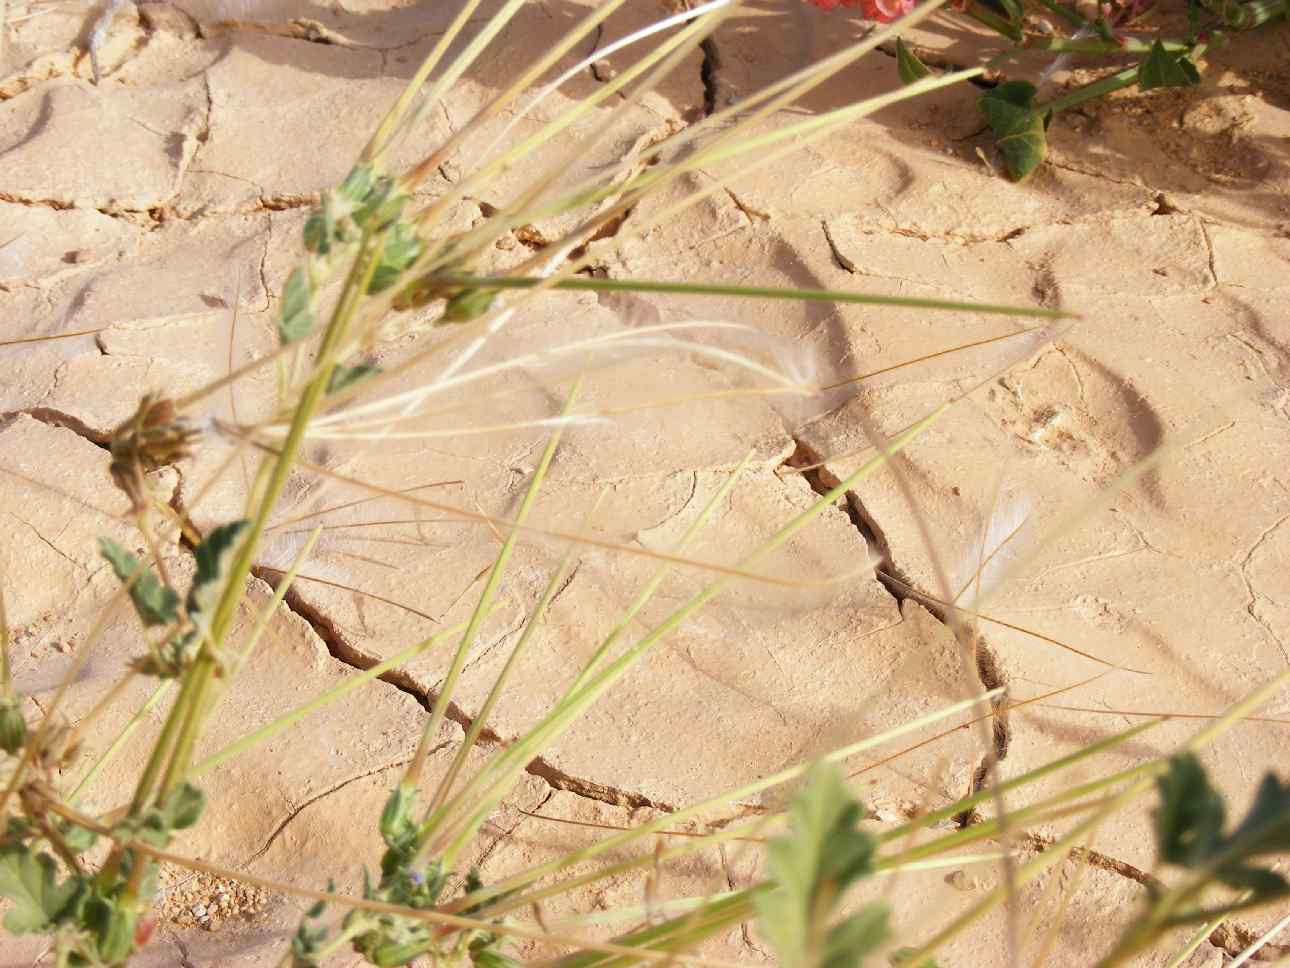 Stork's bill with seeds in Arava desert post floods, 2013